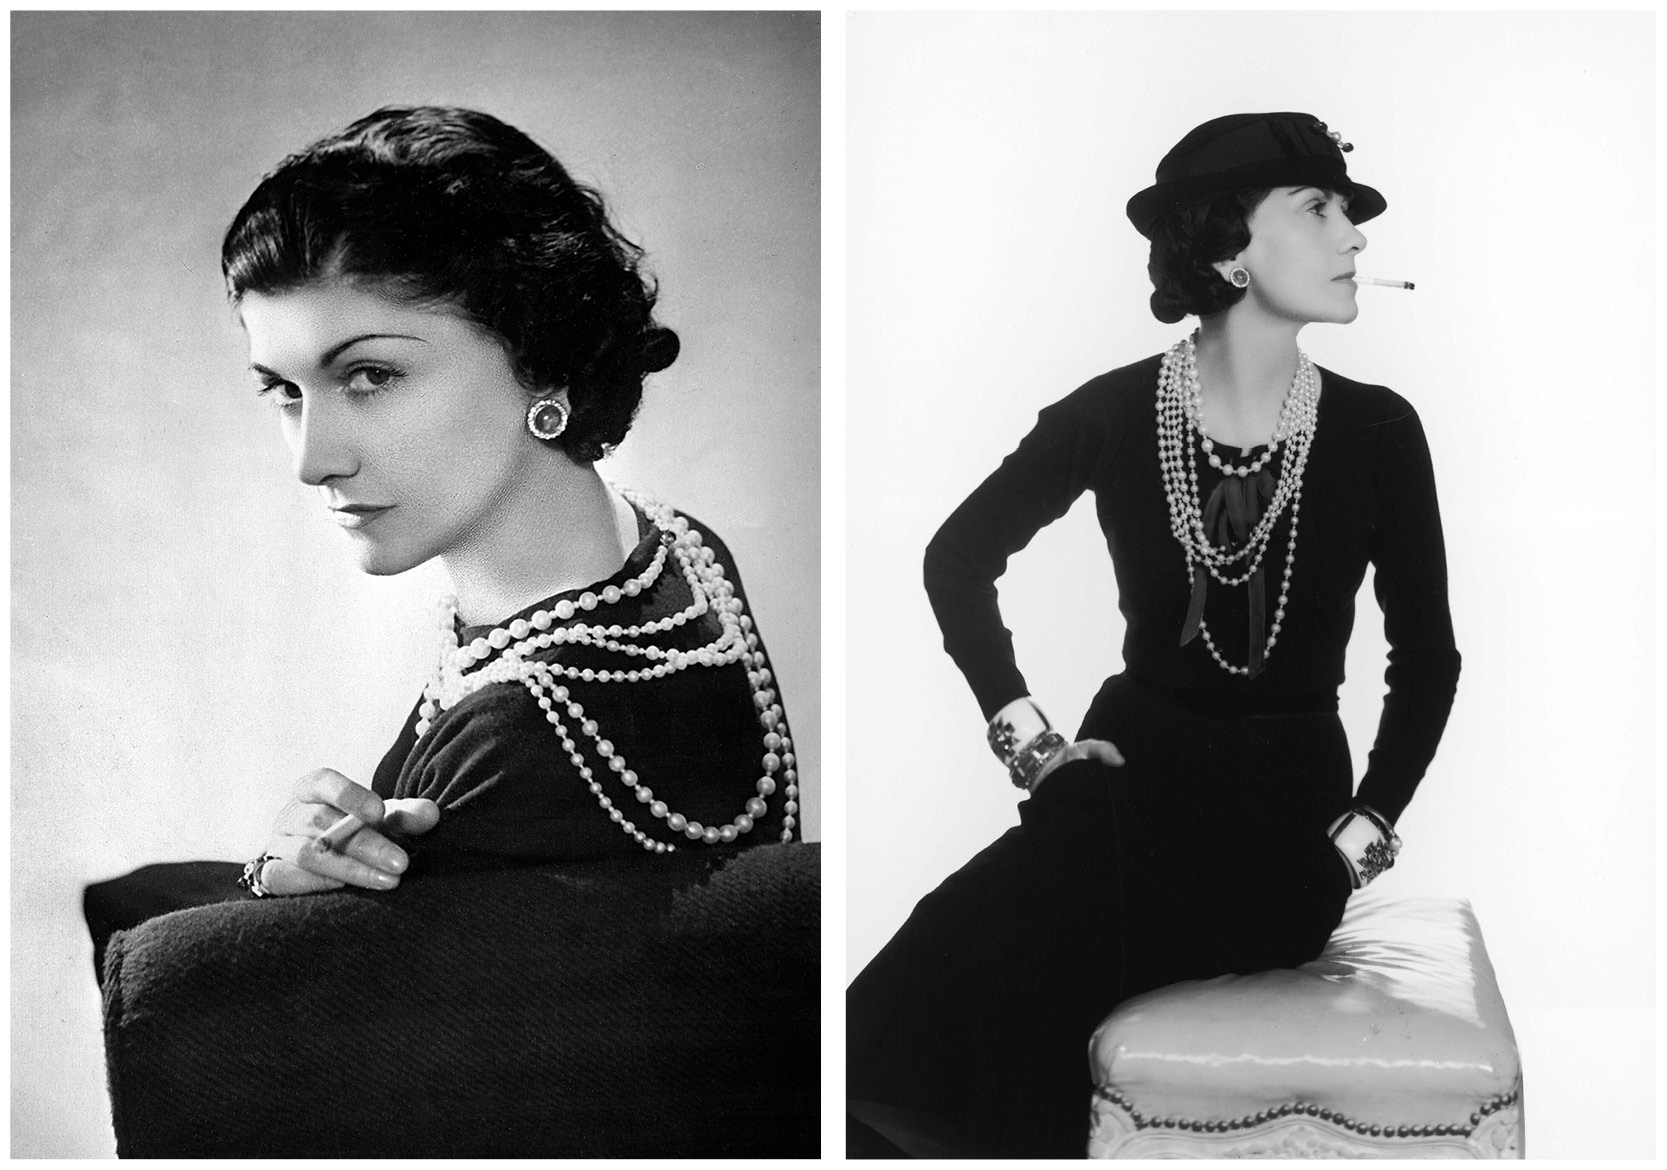 Original photos of Coco Chanel